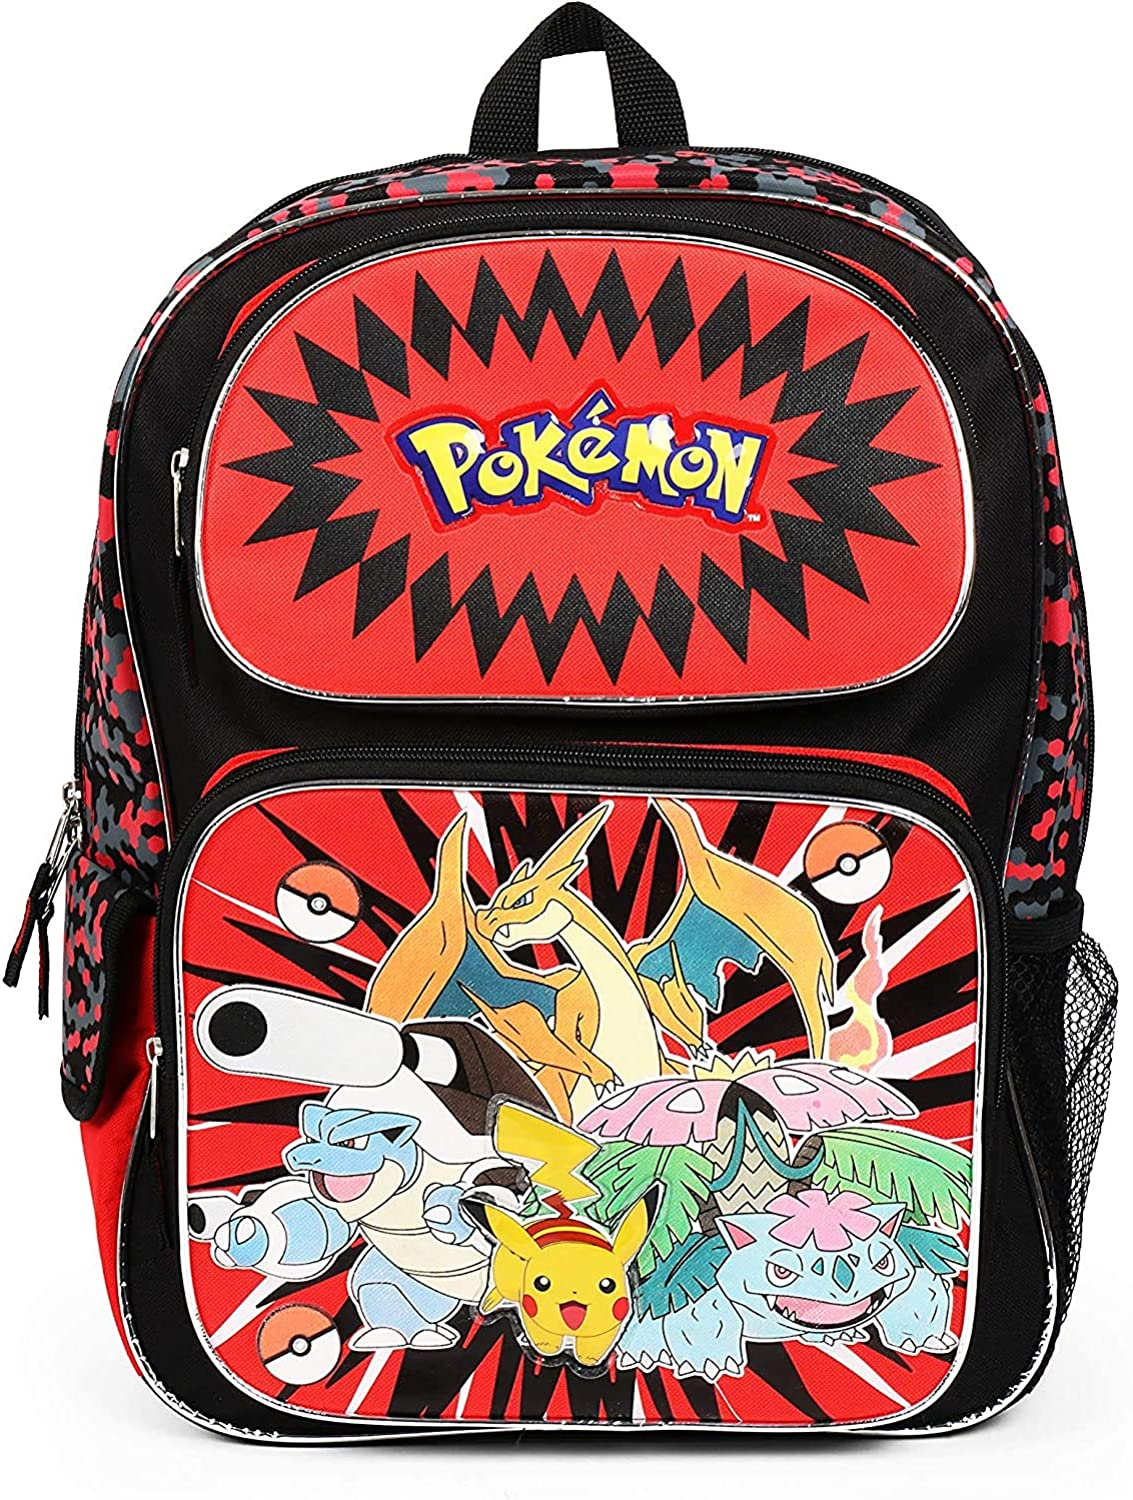 Pokemon and Friends 16 Inch Backpack School Bag